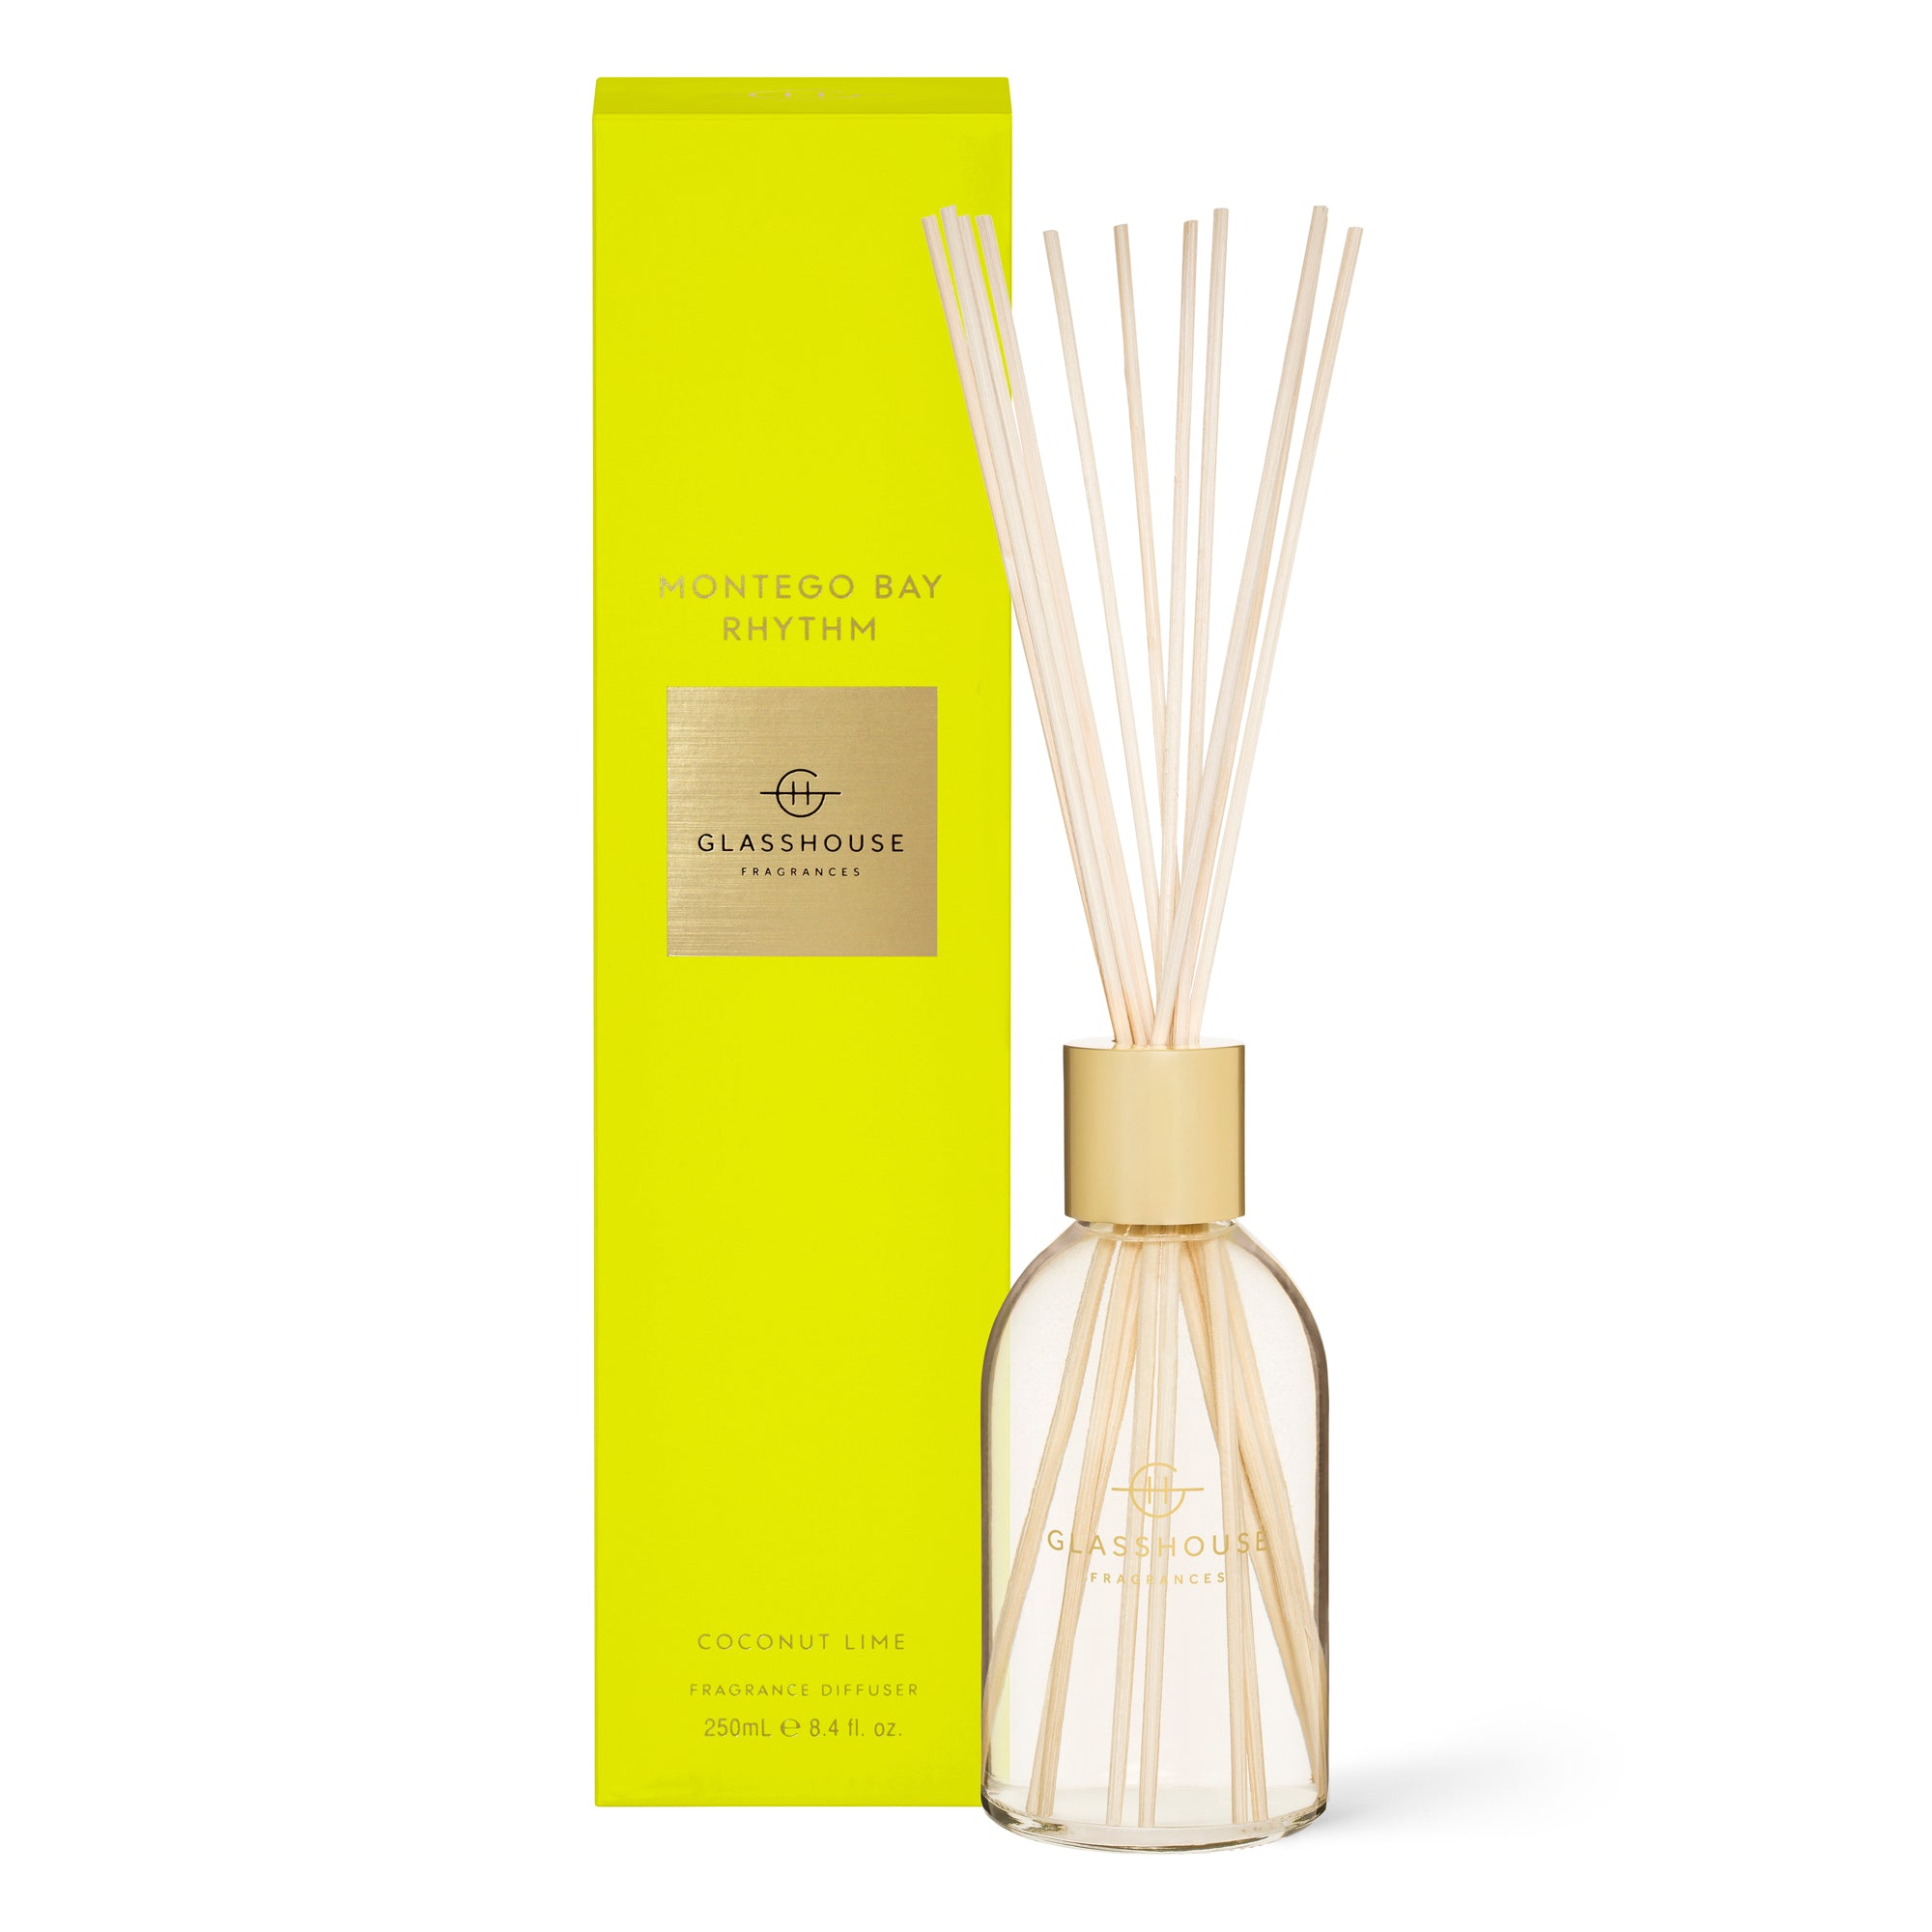 Fragrance Diffuser, 250mL